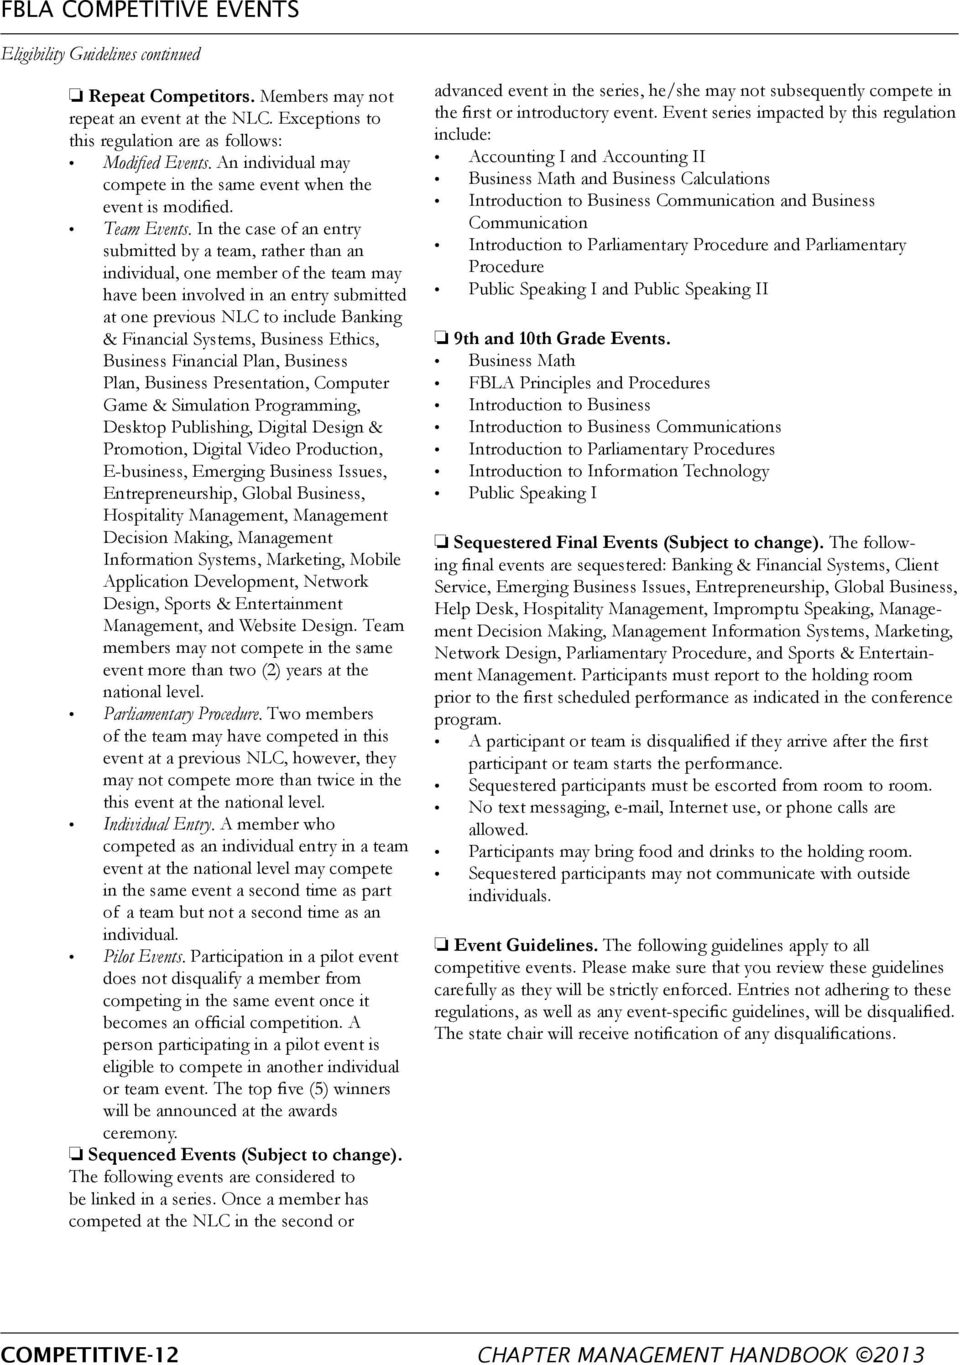 fbla principles and procedures study guide high school